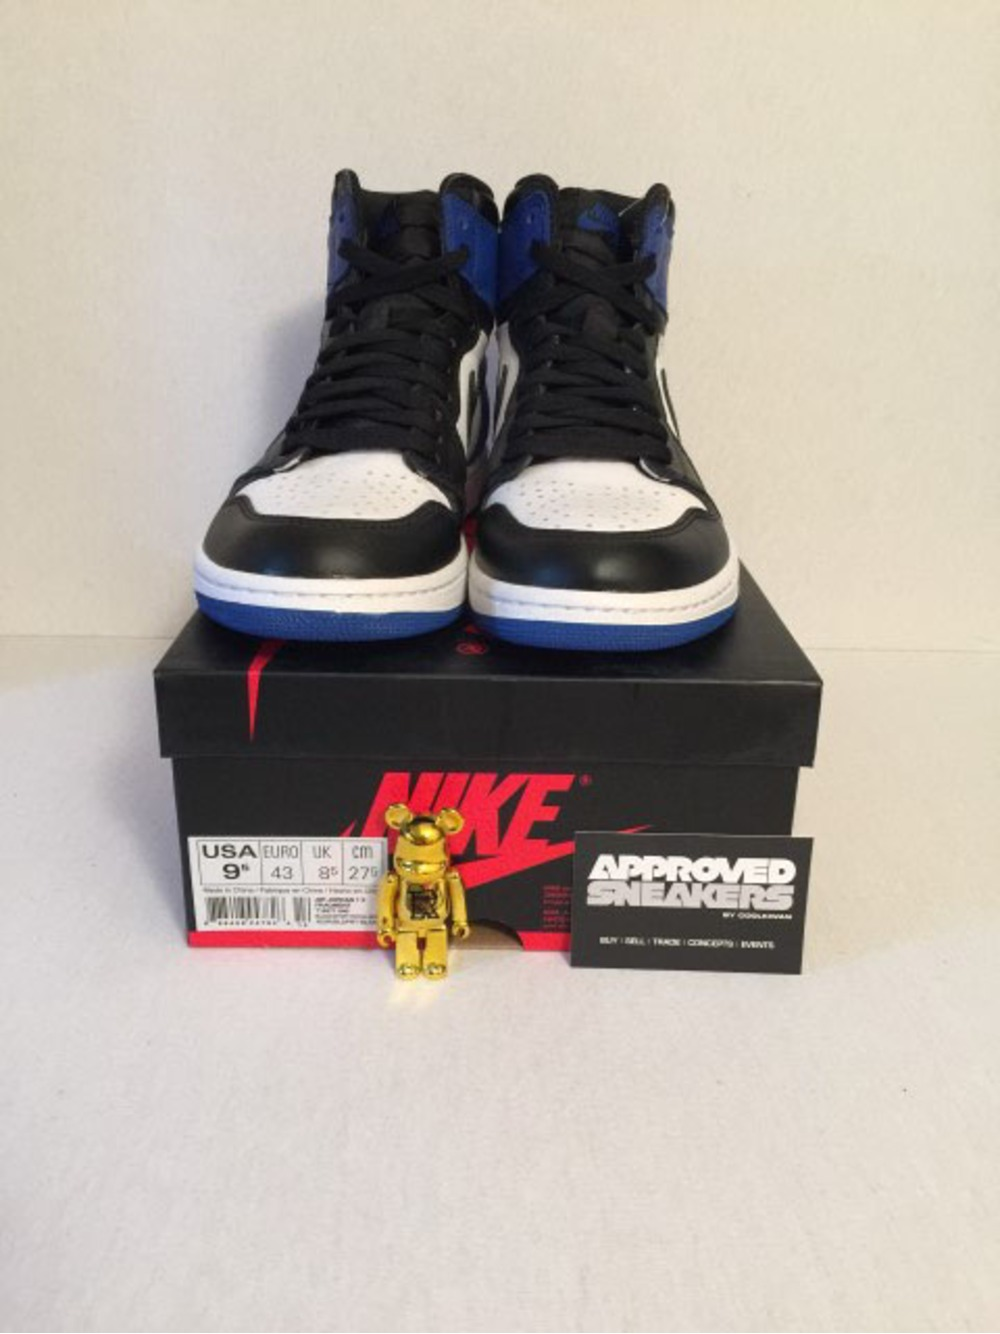 73b71fcedf93 ... is slated to release in limited quantities on Nike Air Jordan 1 Retro  High x Fragment 716371 040 US9.5 43 Shattered bred ...